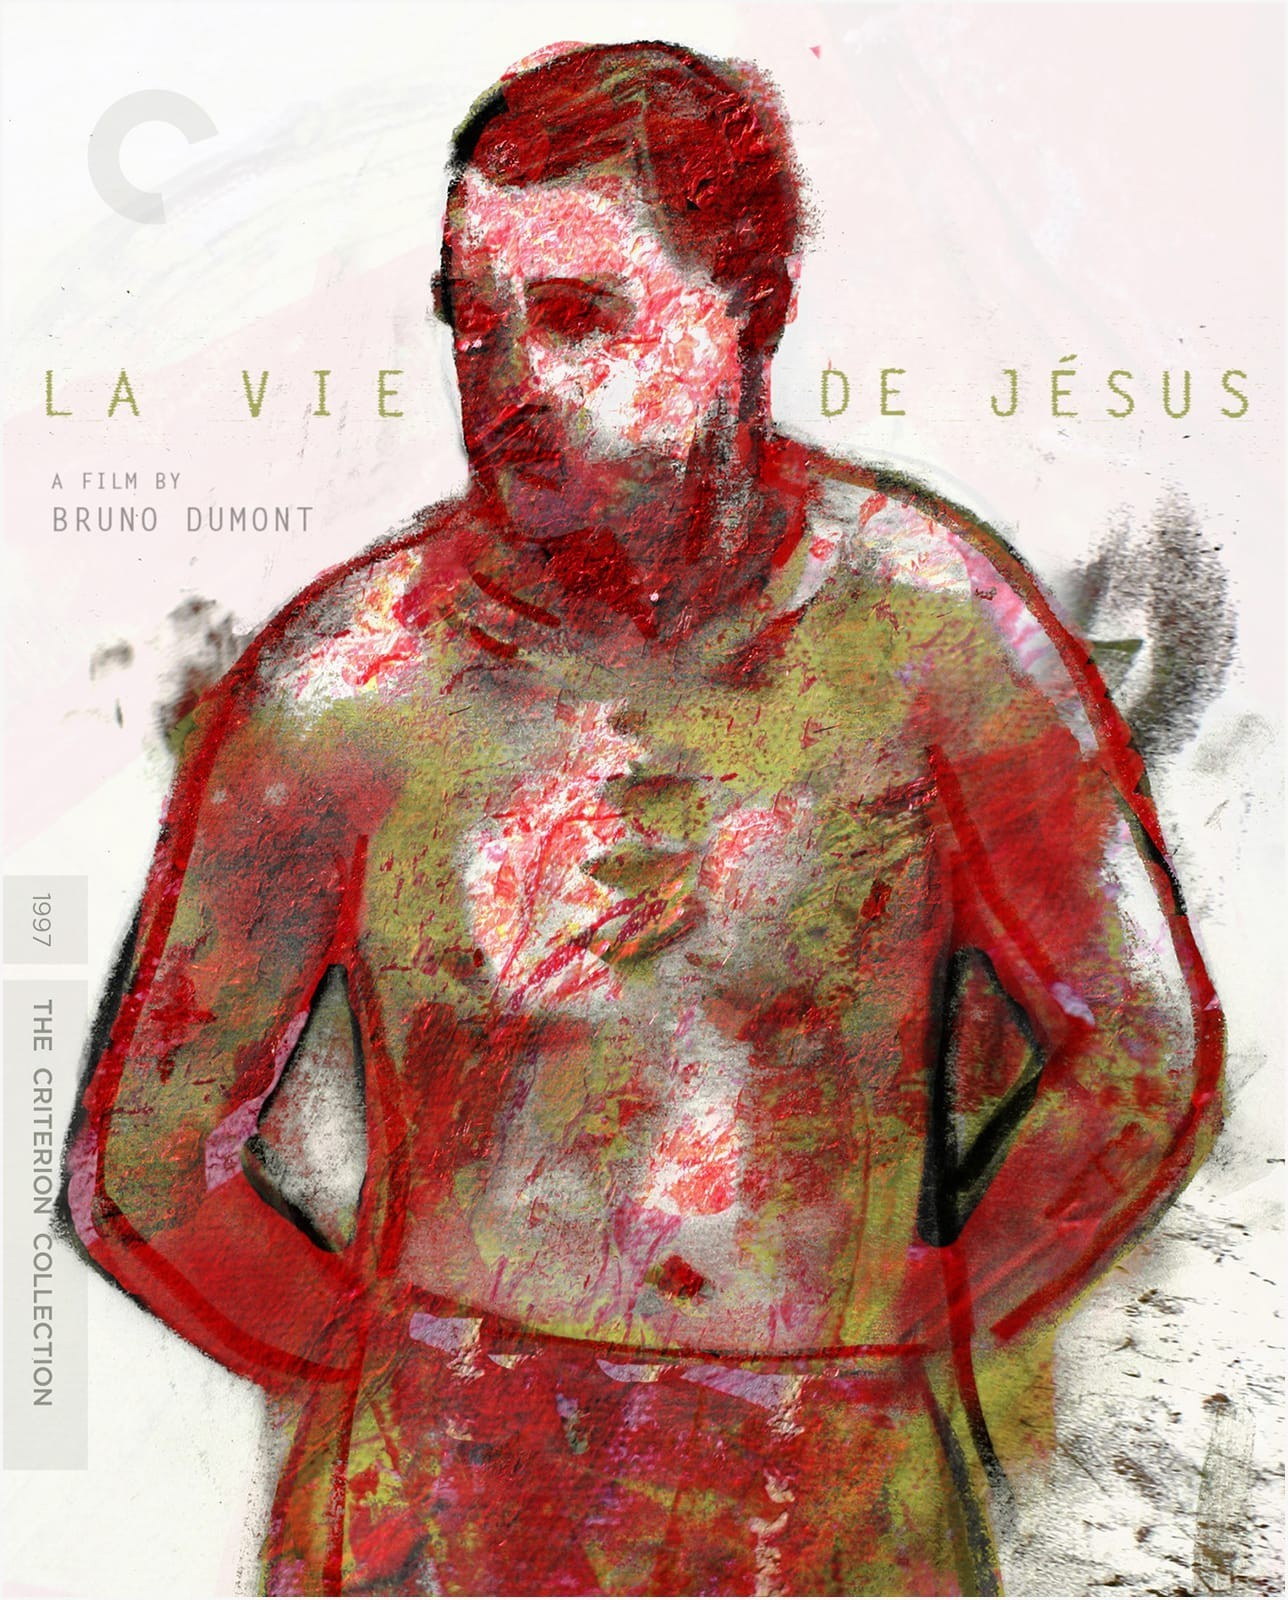 La vie de Jésus (The Criterion Collection)(Blu-ray)(Region A)(Pre-order / Jun 18)